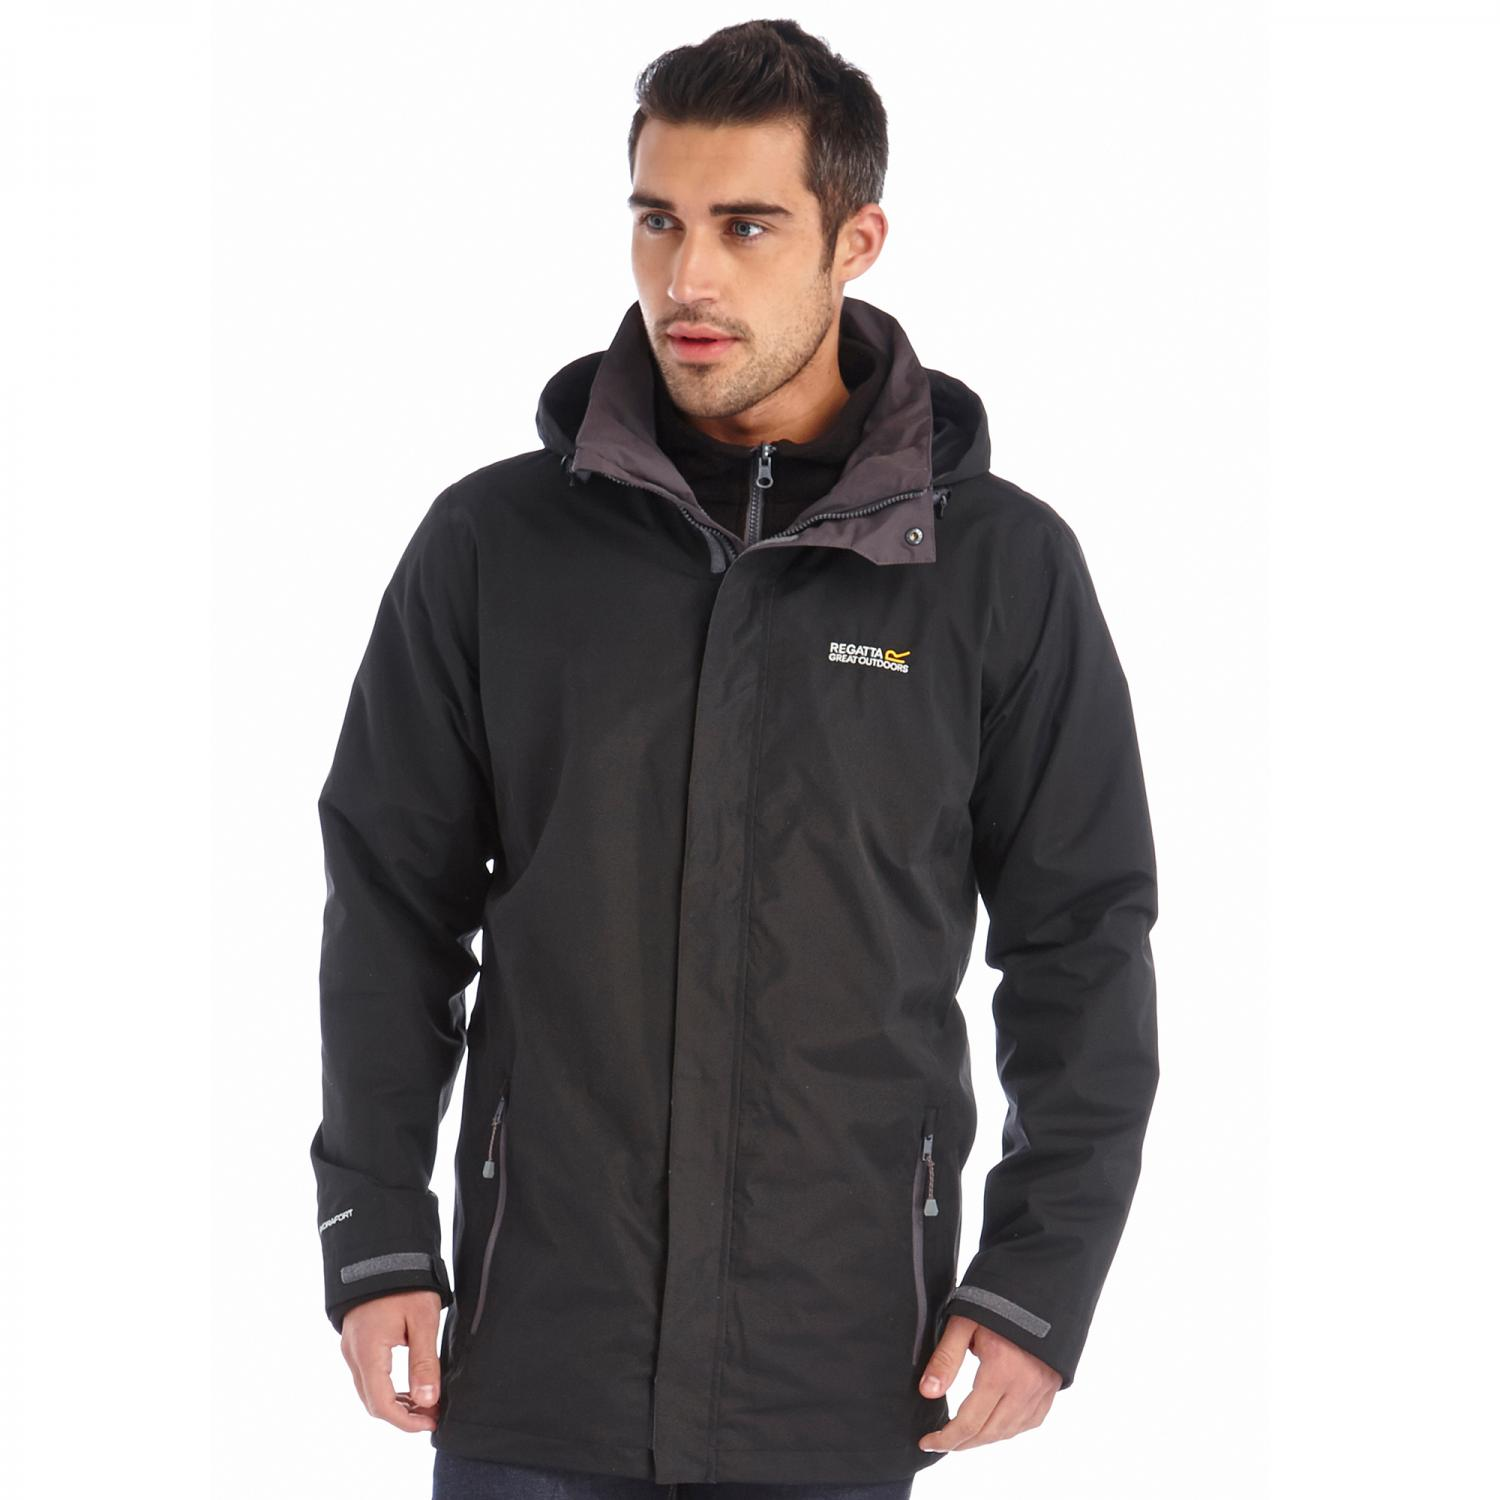 Telmar 3 in 1 Jacket Black